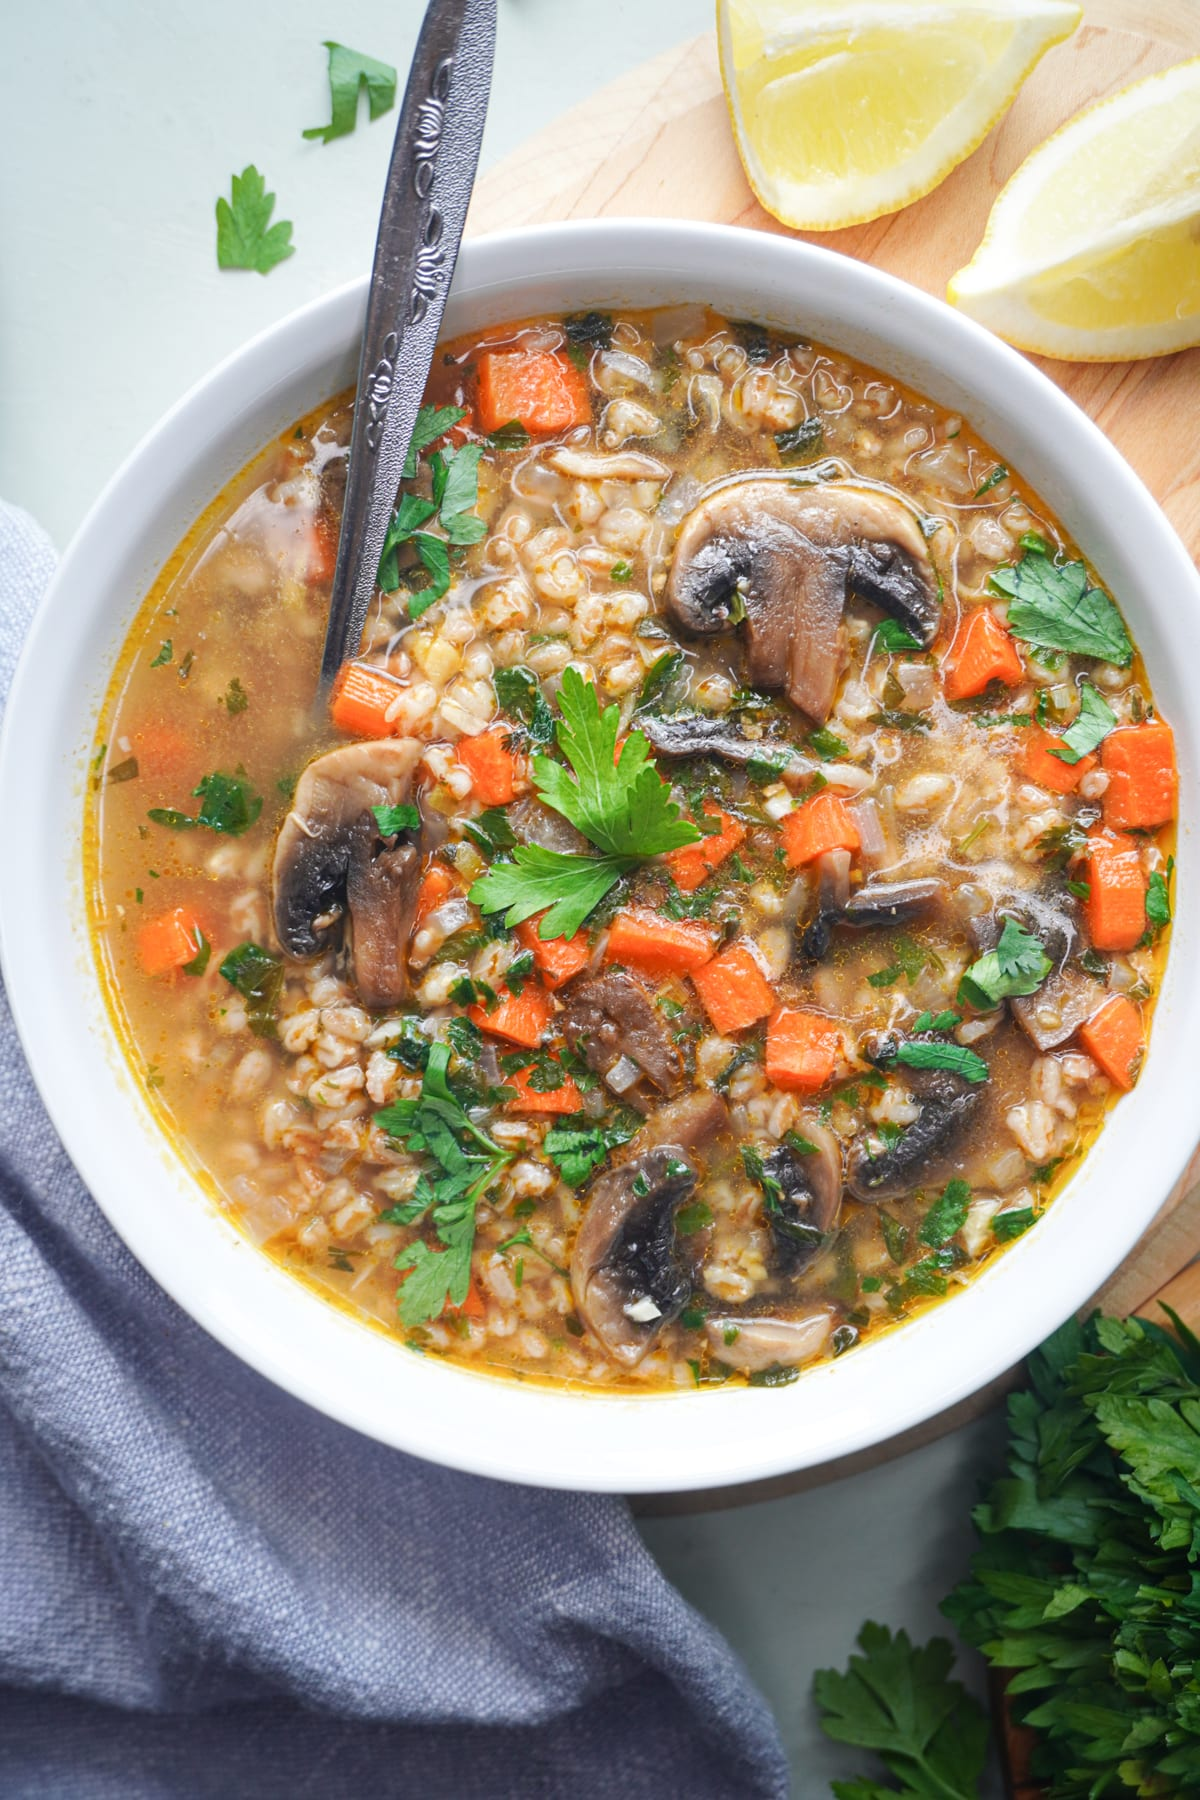 healthy wheat berry soup that's vegan